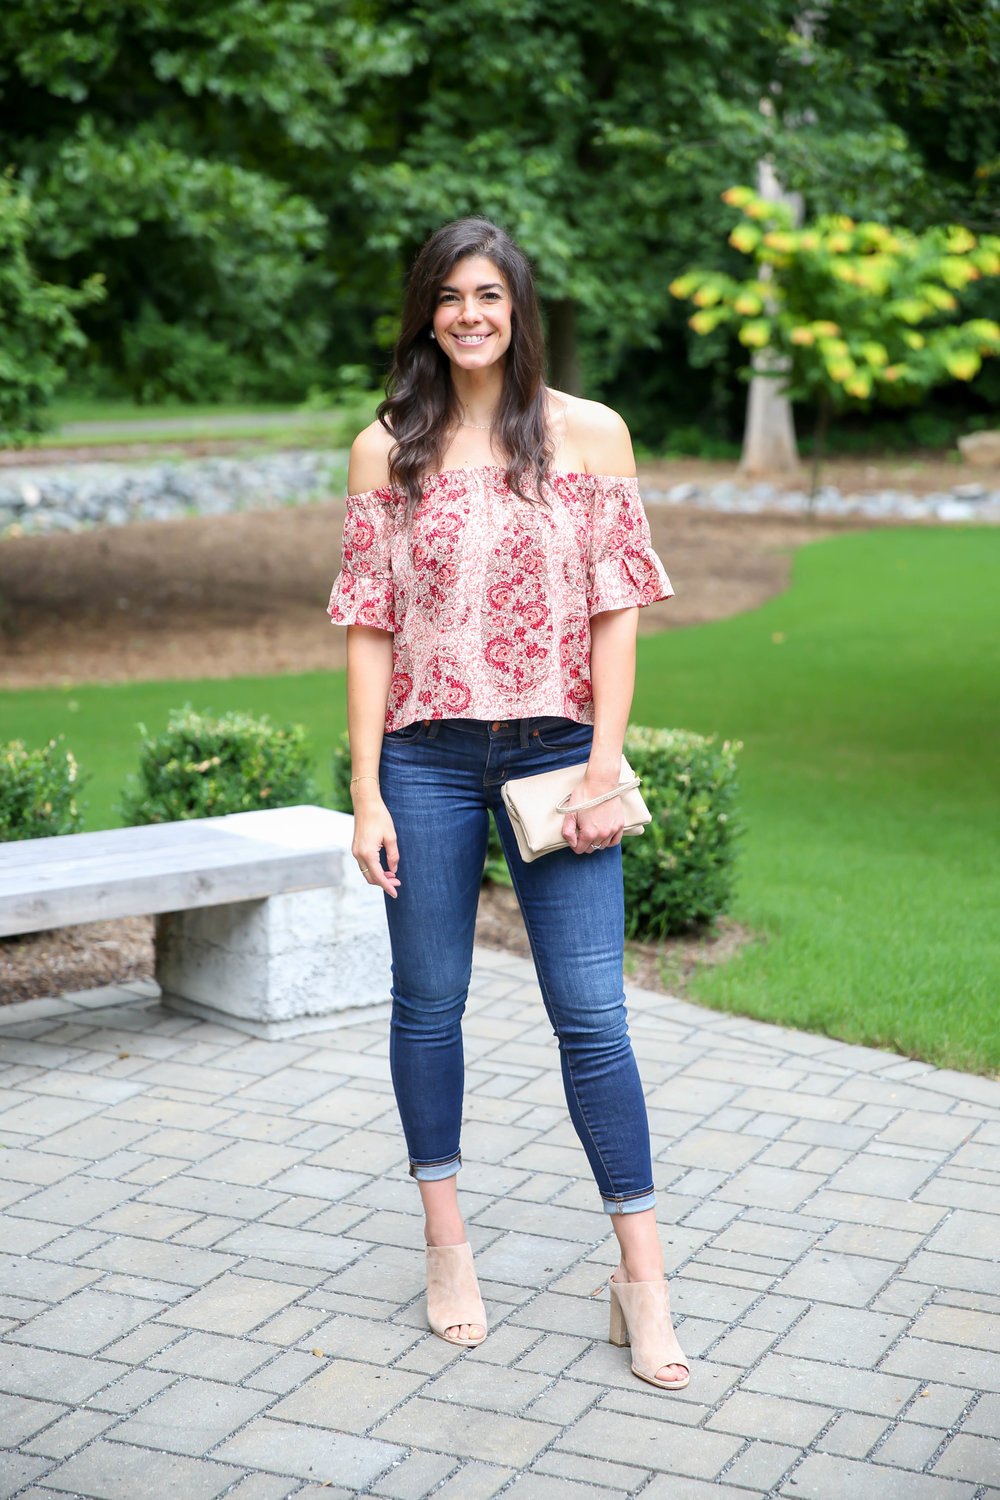 dark-denim-off-the-shoulder-top-lauren-schwaiger-style-blogger.jpg